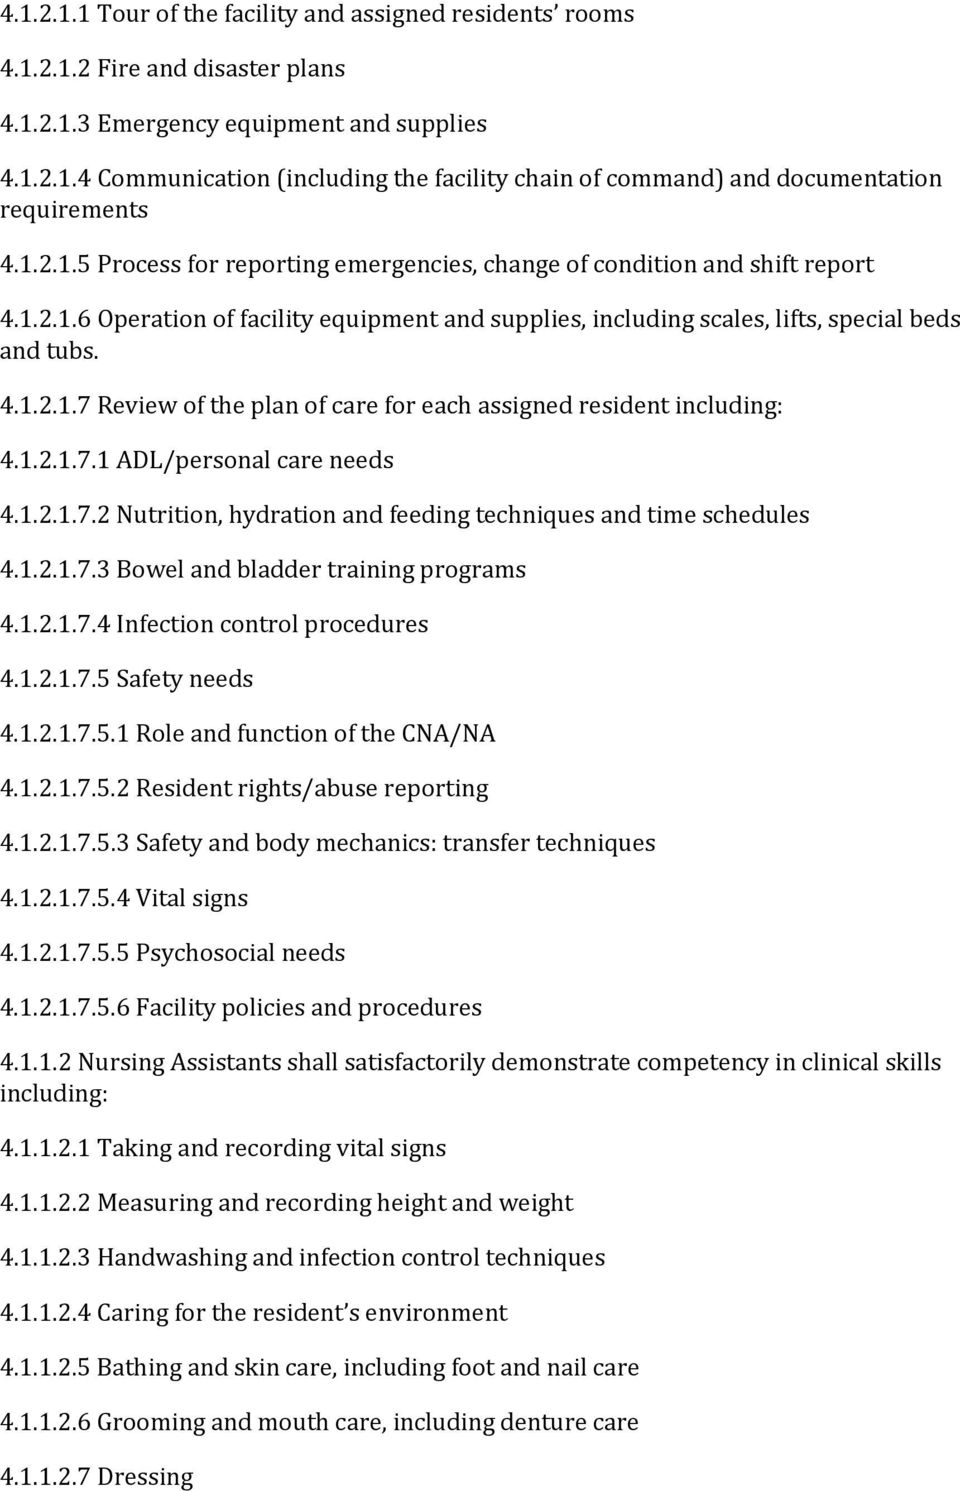 1.2.1.7.1 ADL/personal care needs 4.1.2.1.7.2 Nutrition, hydration and feeding techniques and time schedules 4.1.2.1.7.3 Bowel and bladder training programs 4.1.2.1.7.4 Infection control procedures 4.